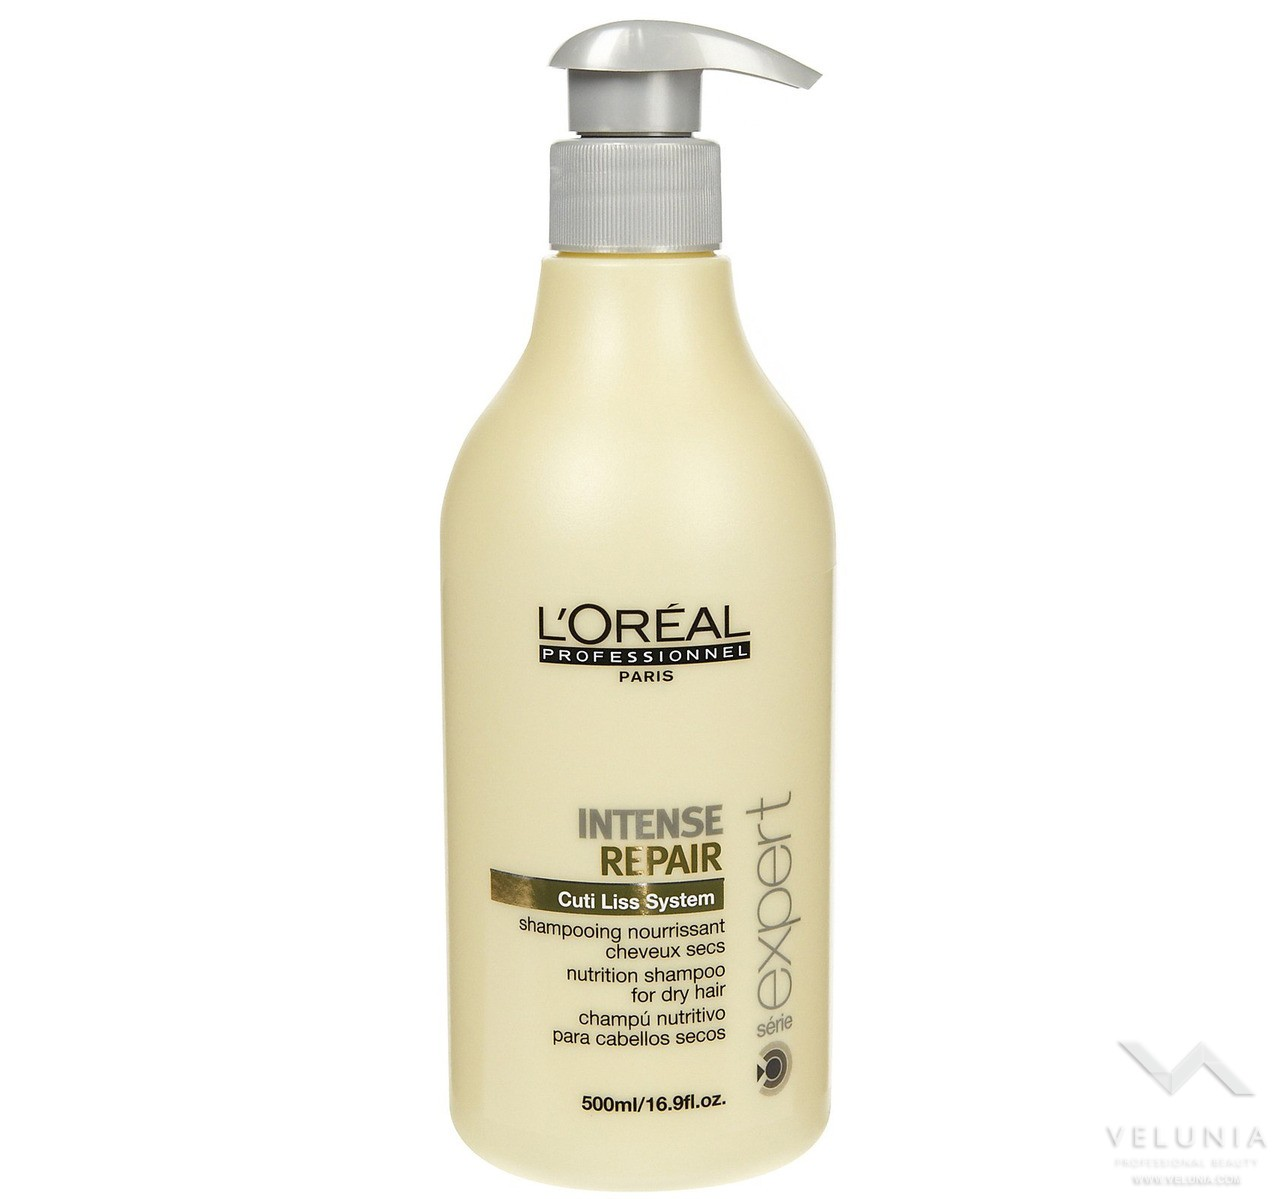 L'Oreal Expert Intense Repair 500ml 1